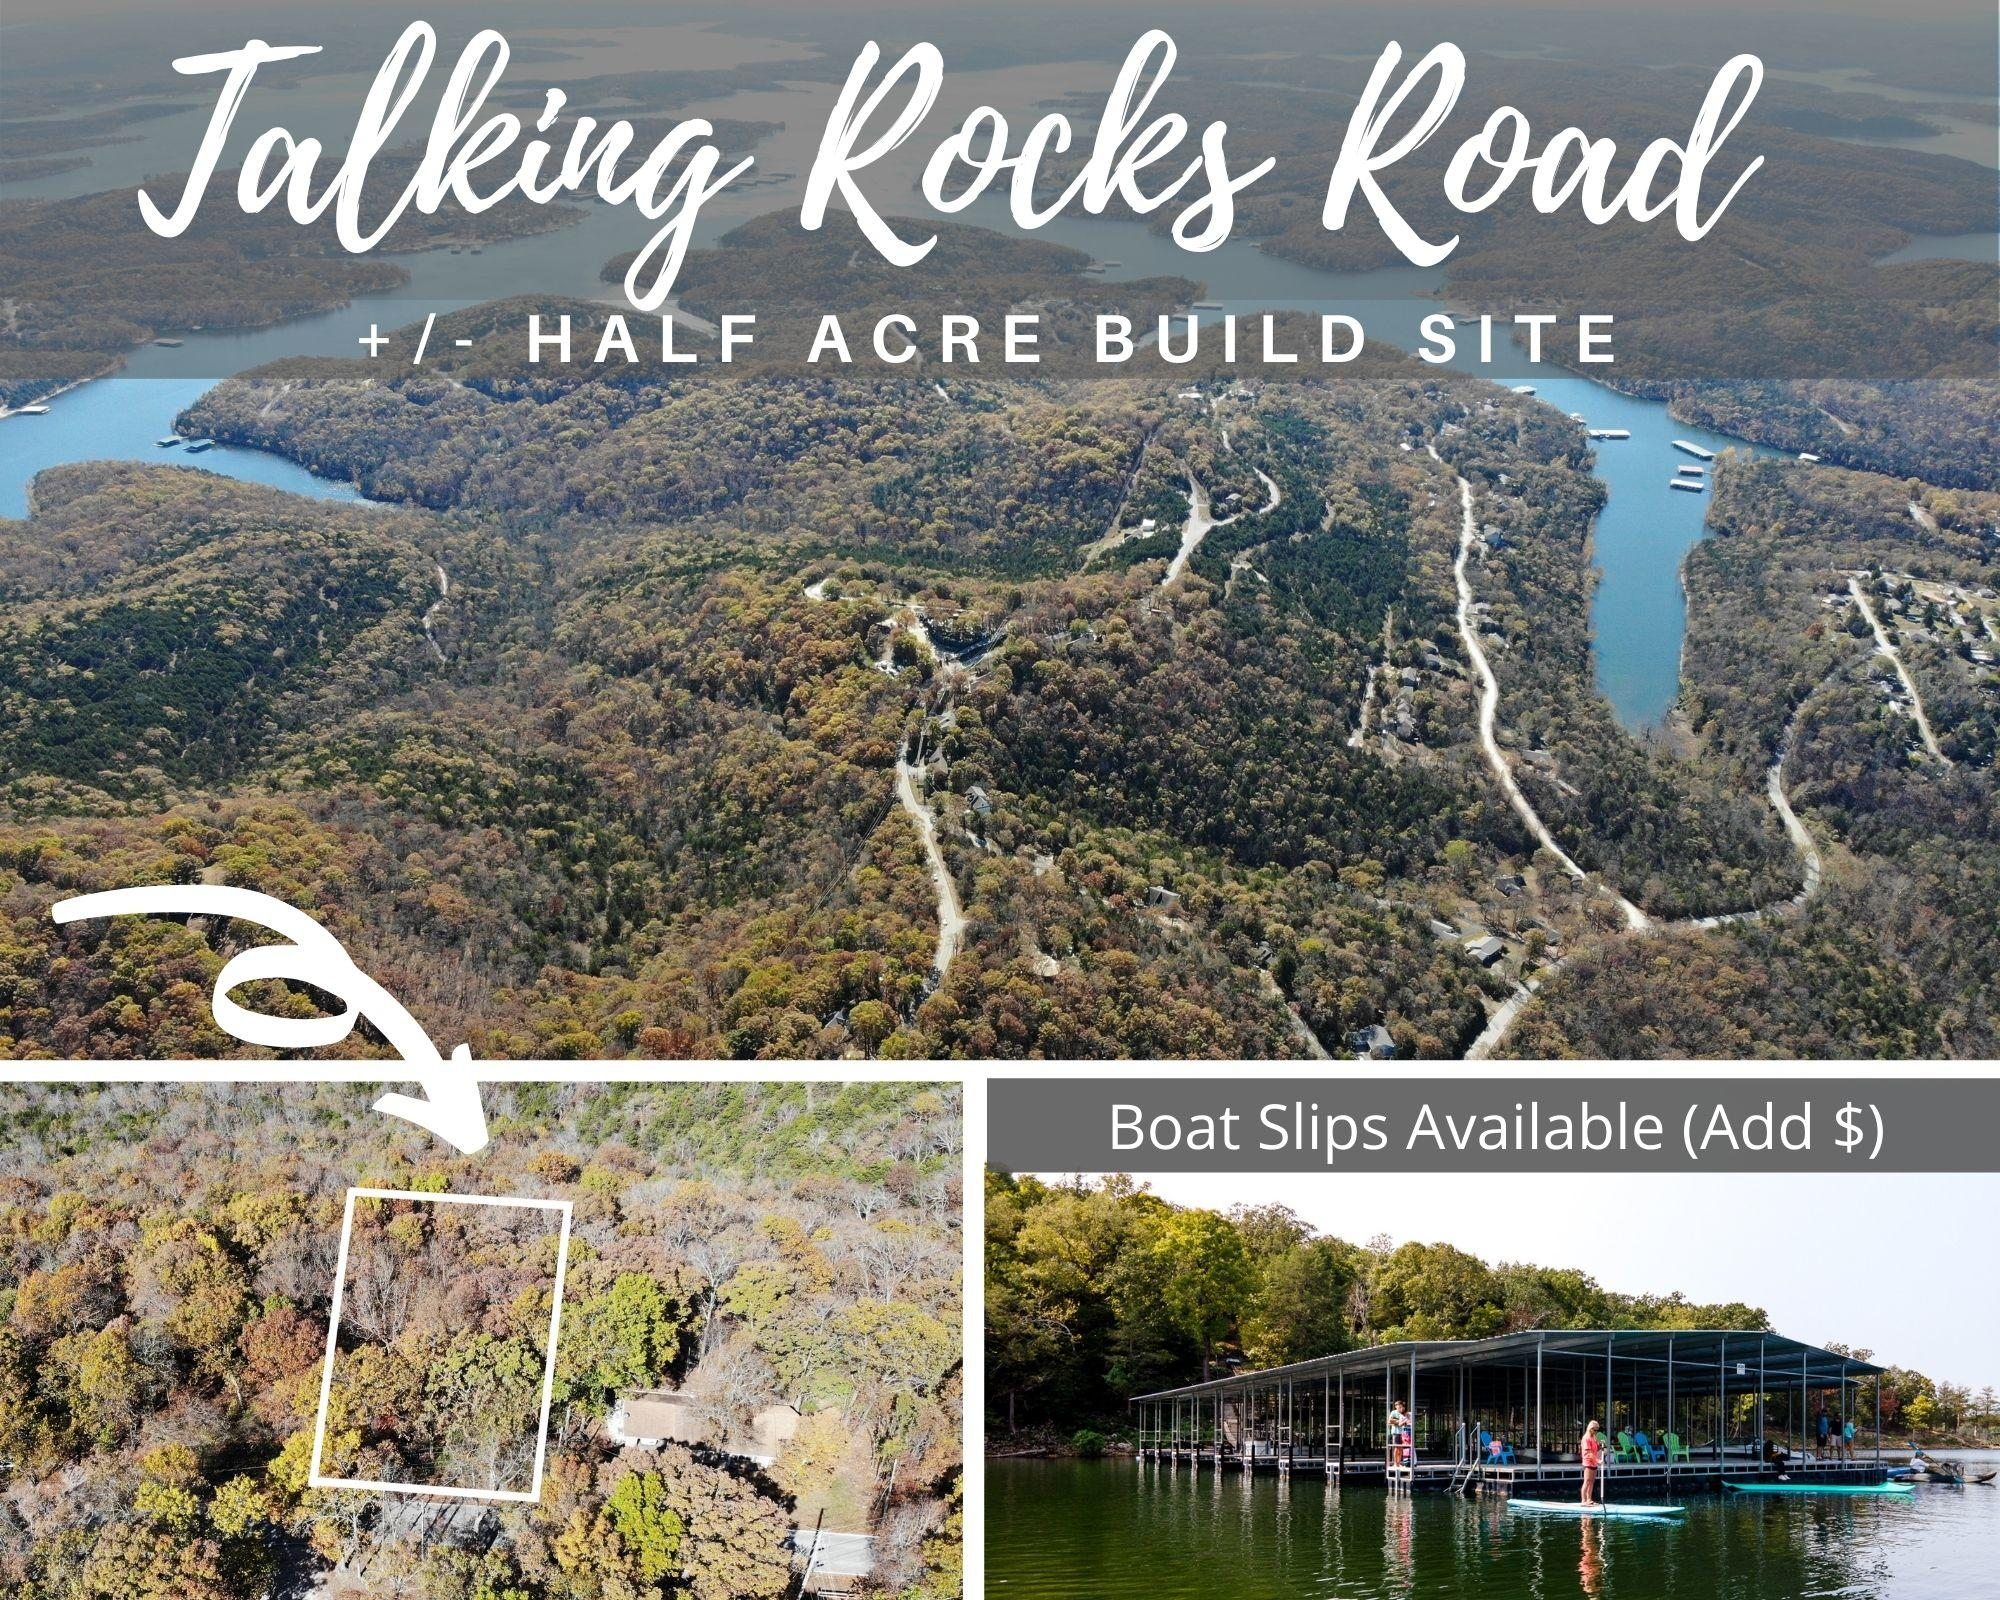 Lot 29 Talking Rocks Road Reeds Spring, MO 65737